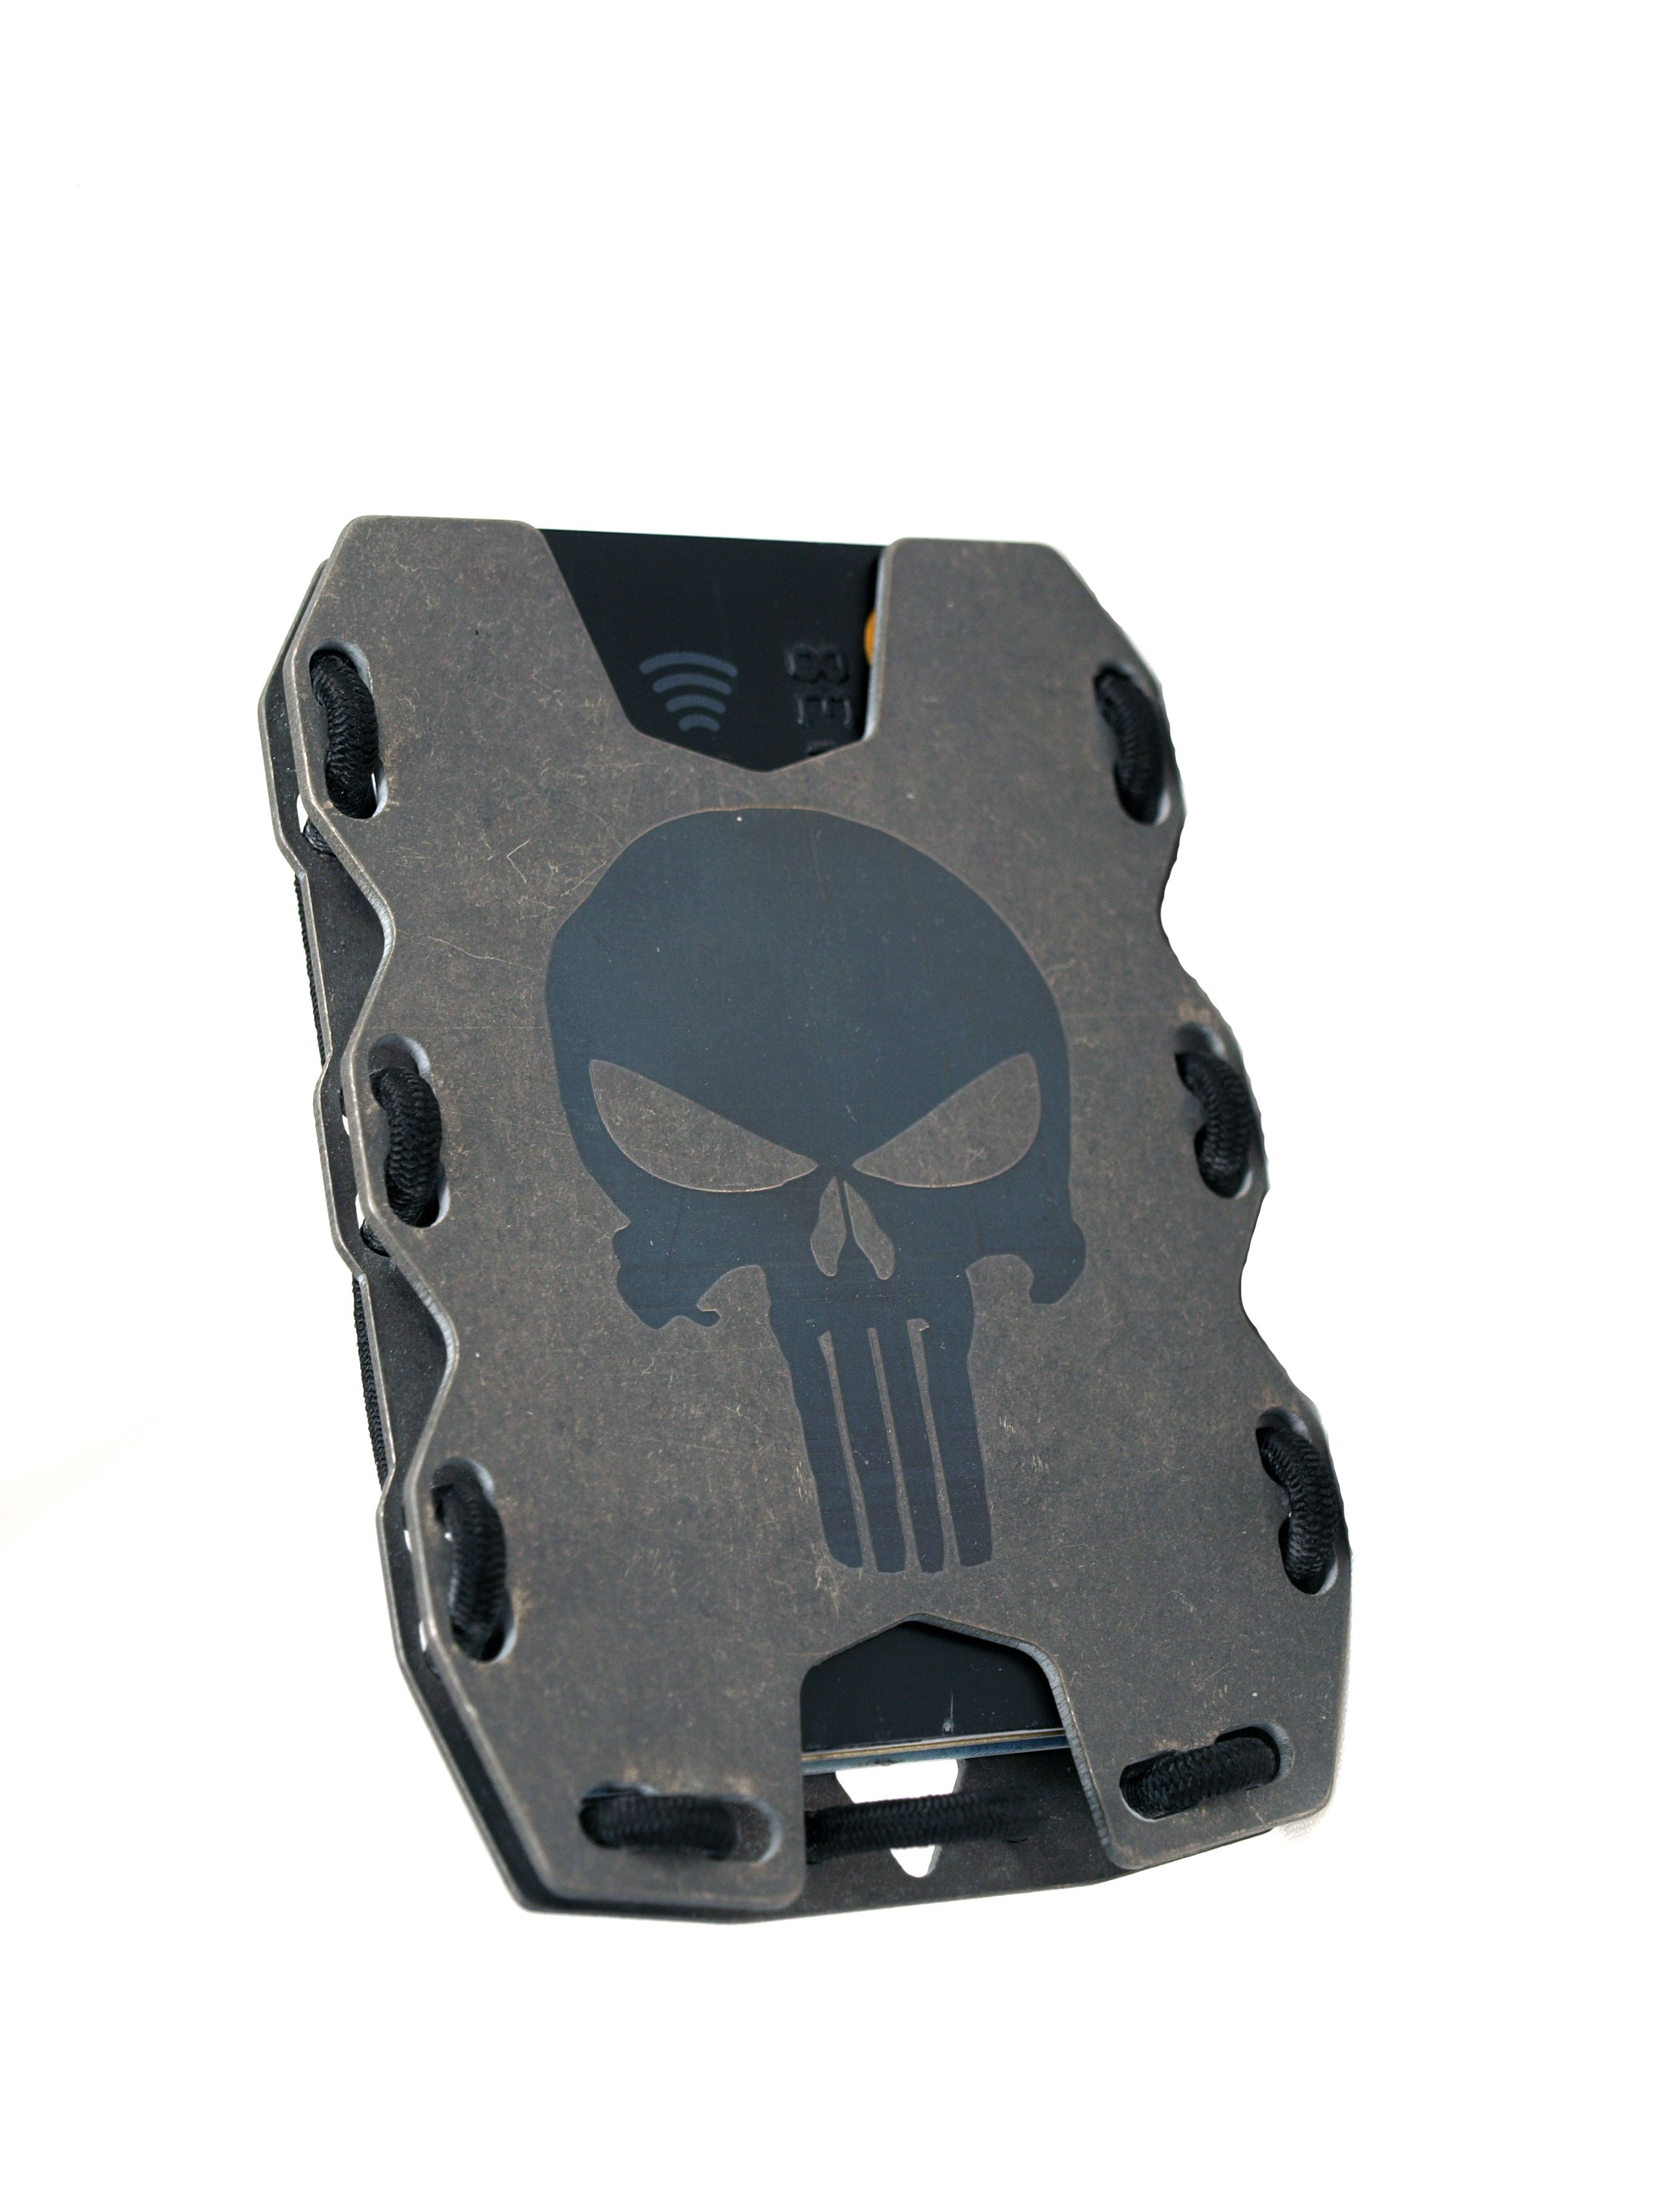 Kydex Tactical Wallet w// Custom Belt Clip,We The People Flag Holds Up To 7 Cards